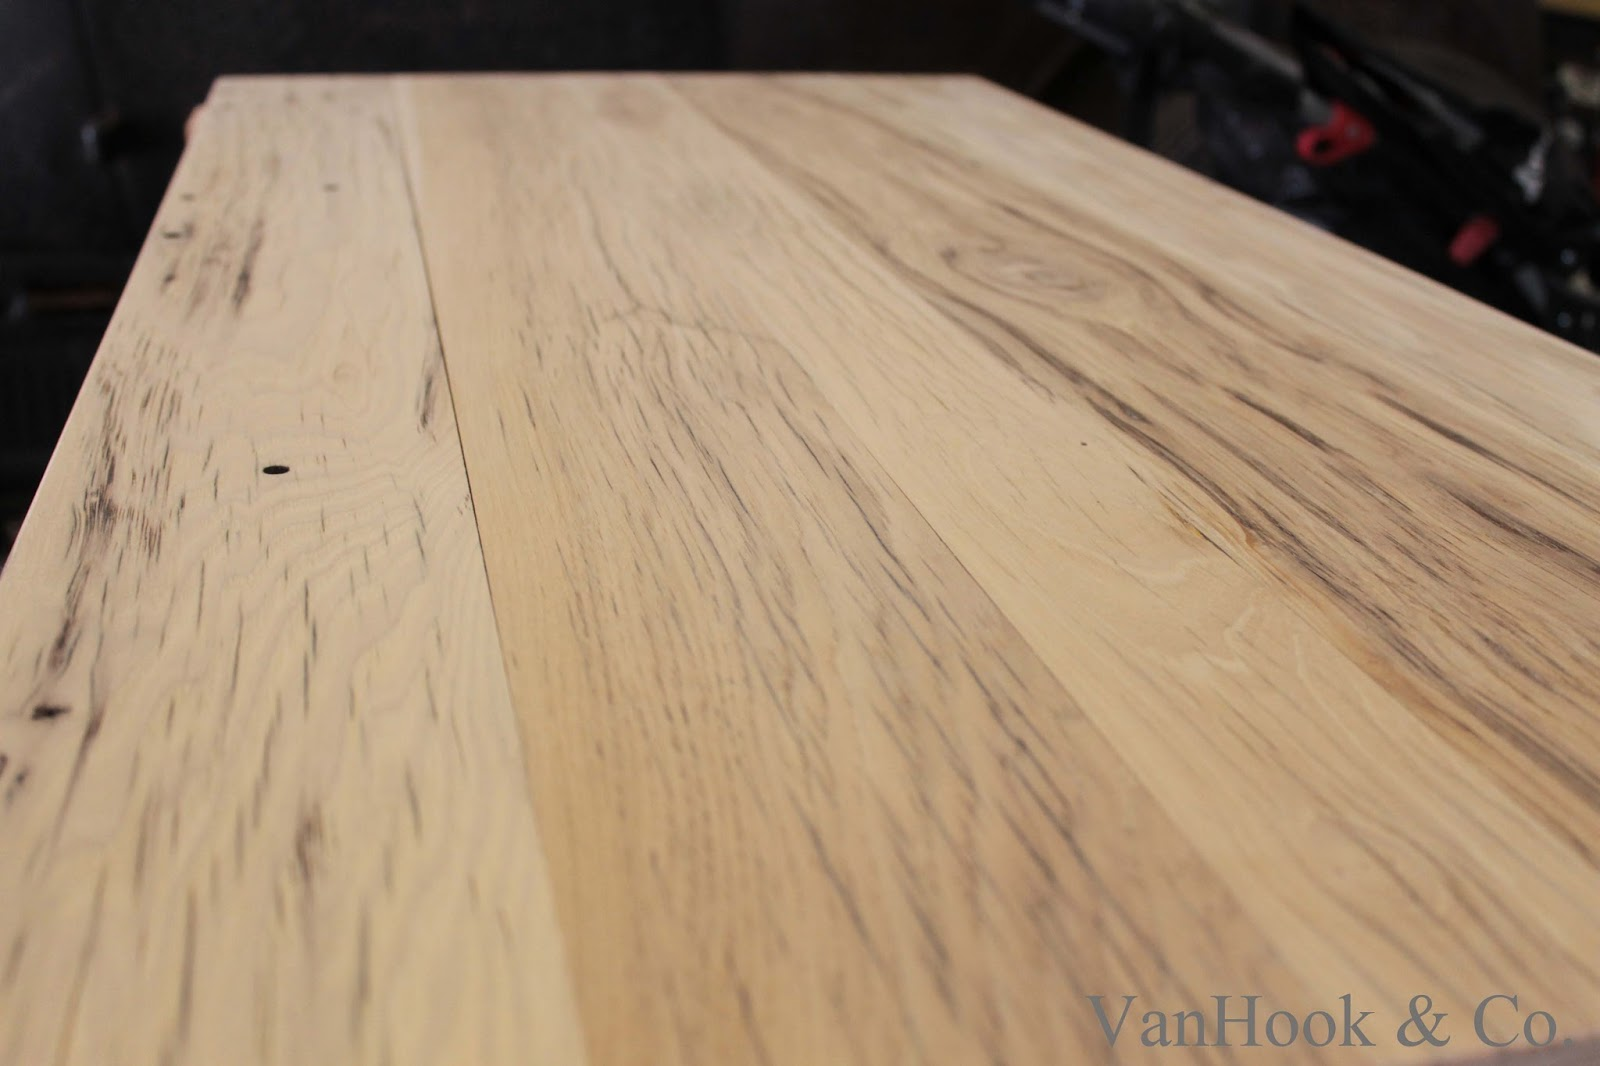 Oak Table Top - Reclaimed oak table top